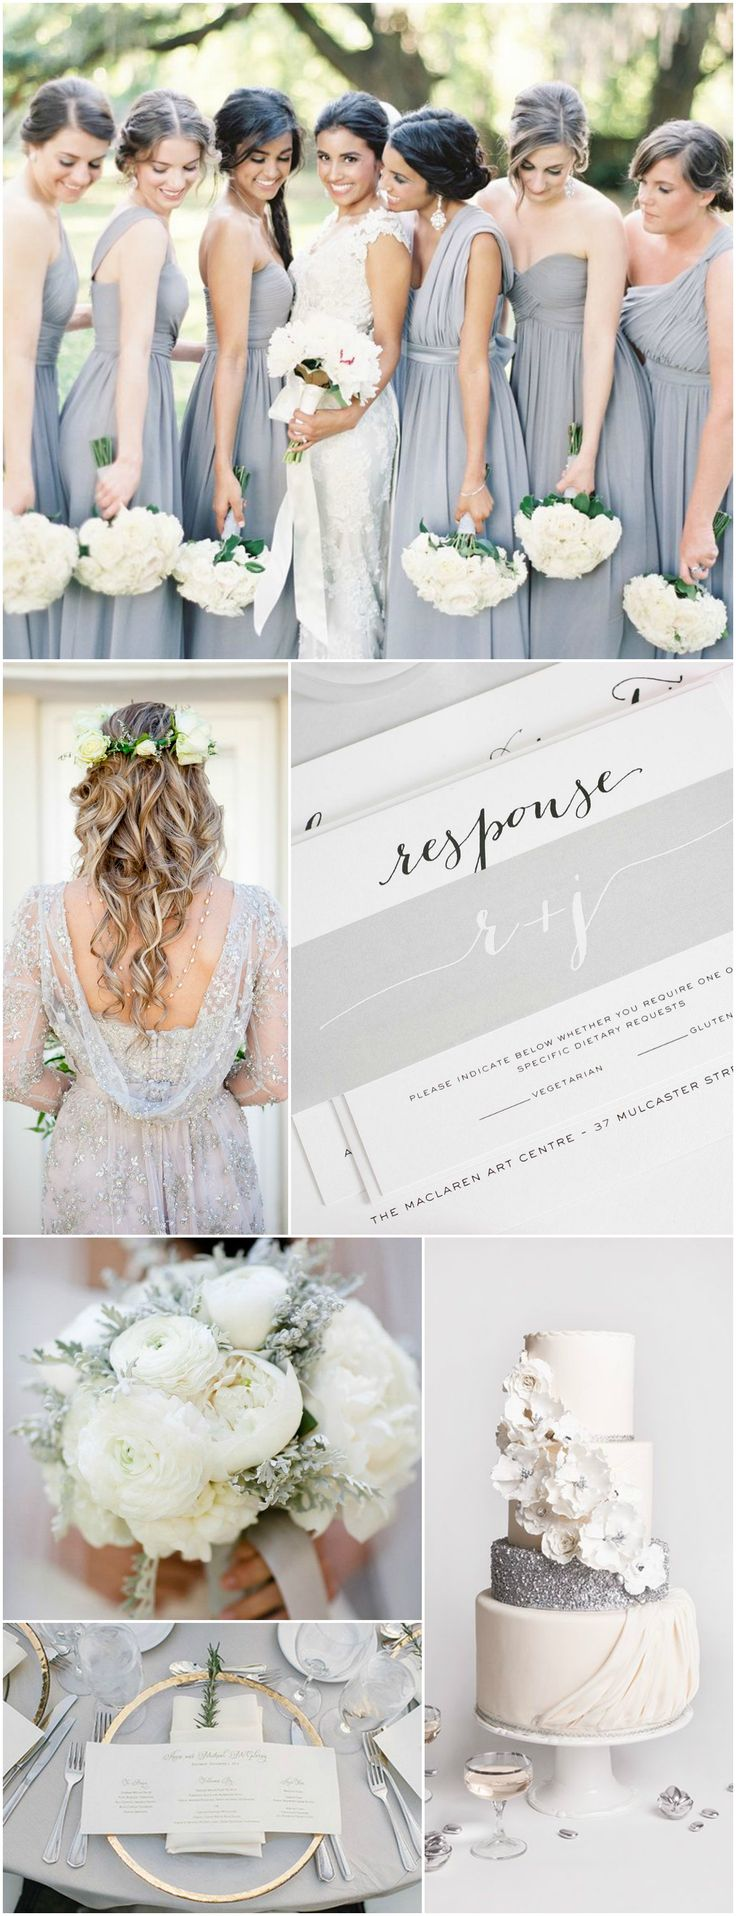 Silver Wedding Inspiration | Gray Wedding Inspiration | Glitter Wedding Cake | Calligraphy Wedding Invitations